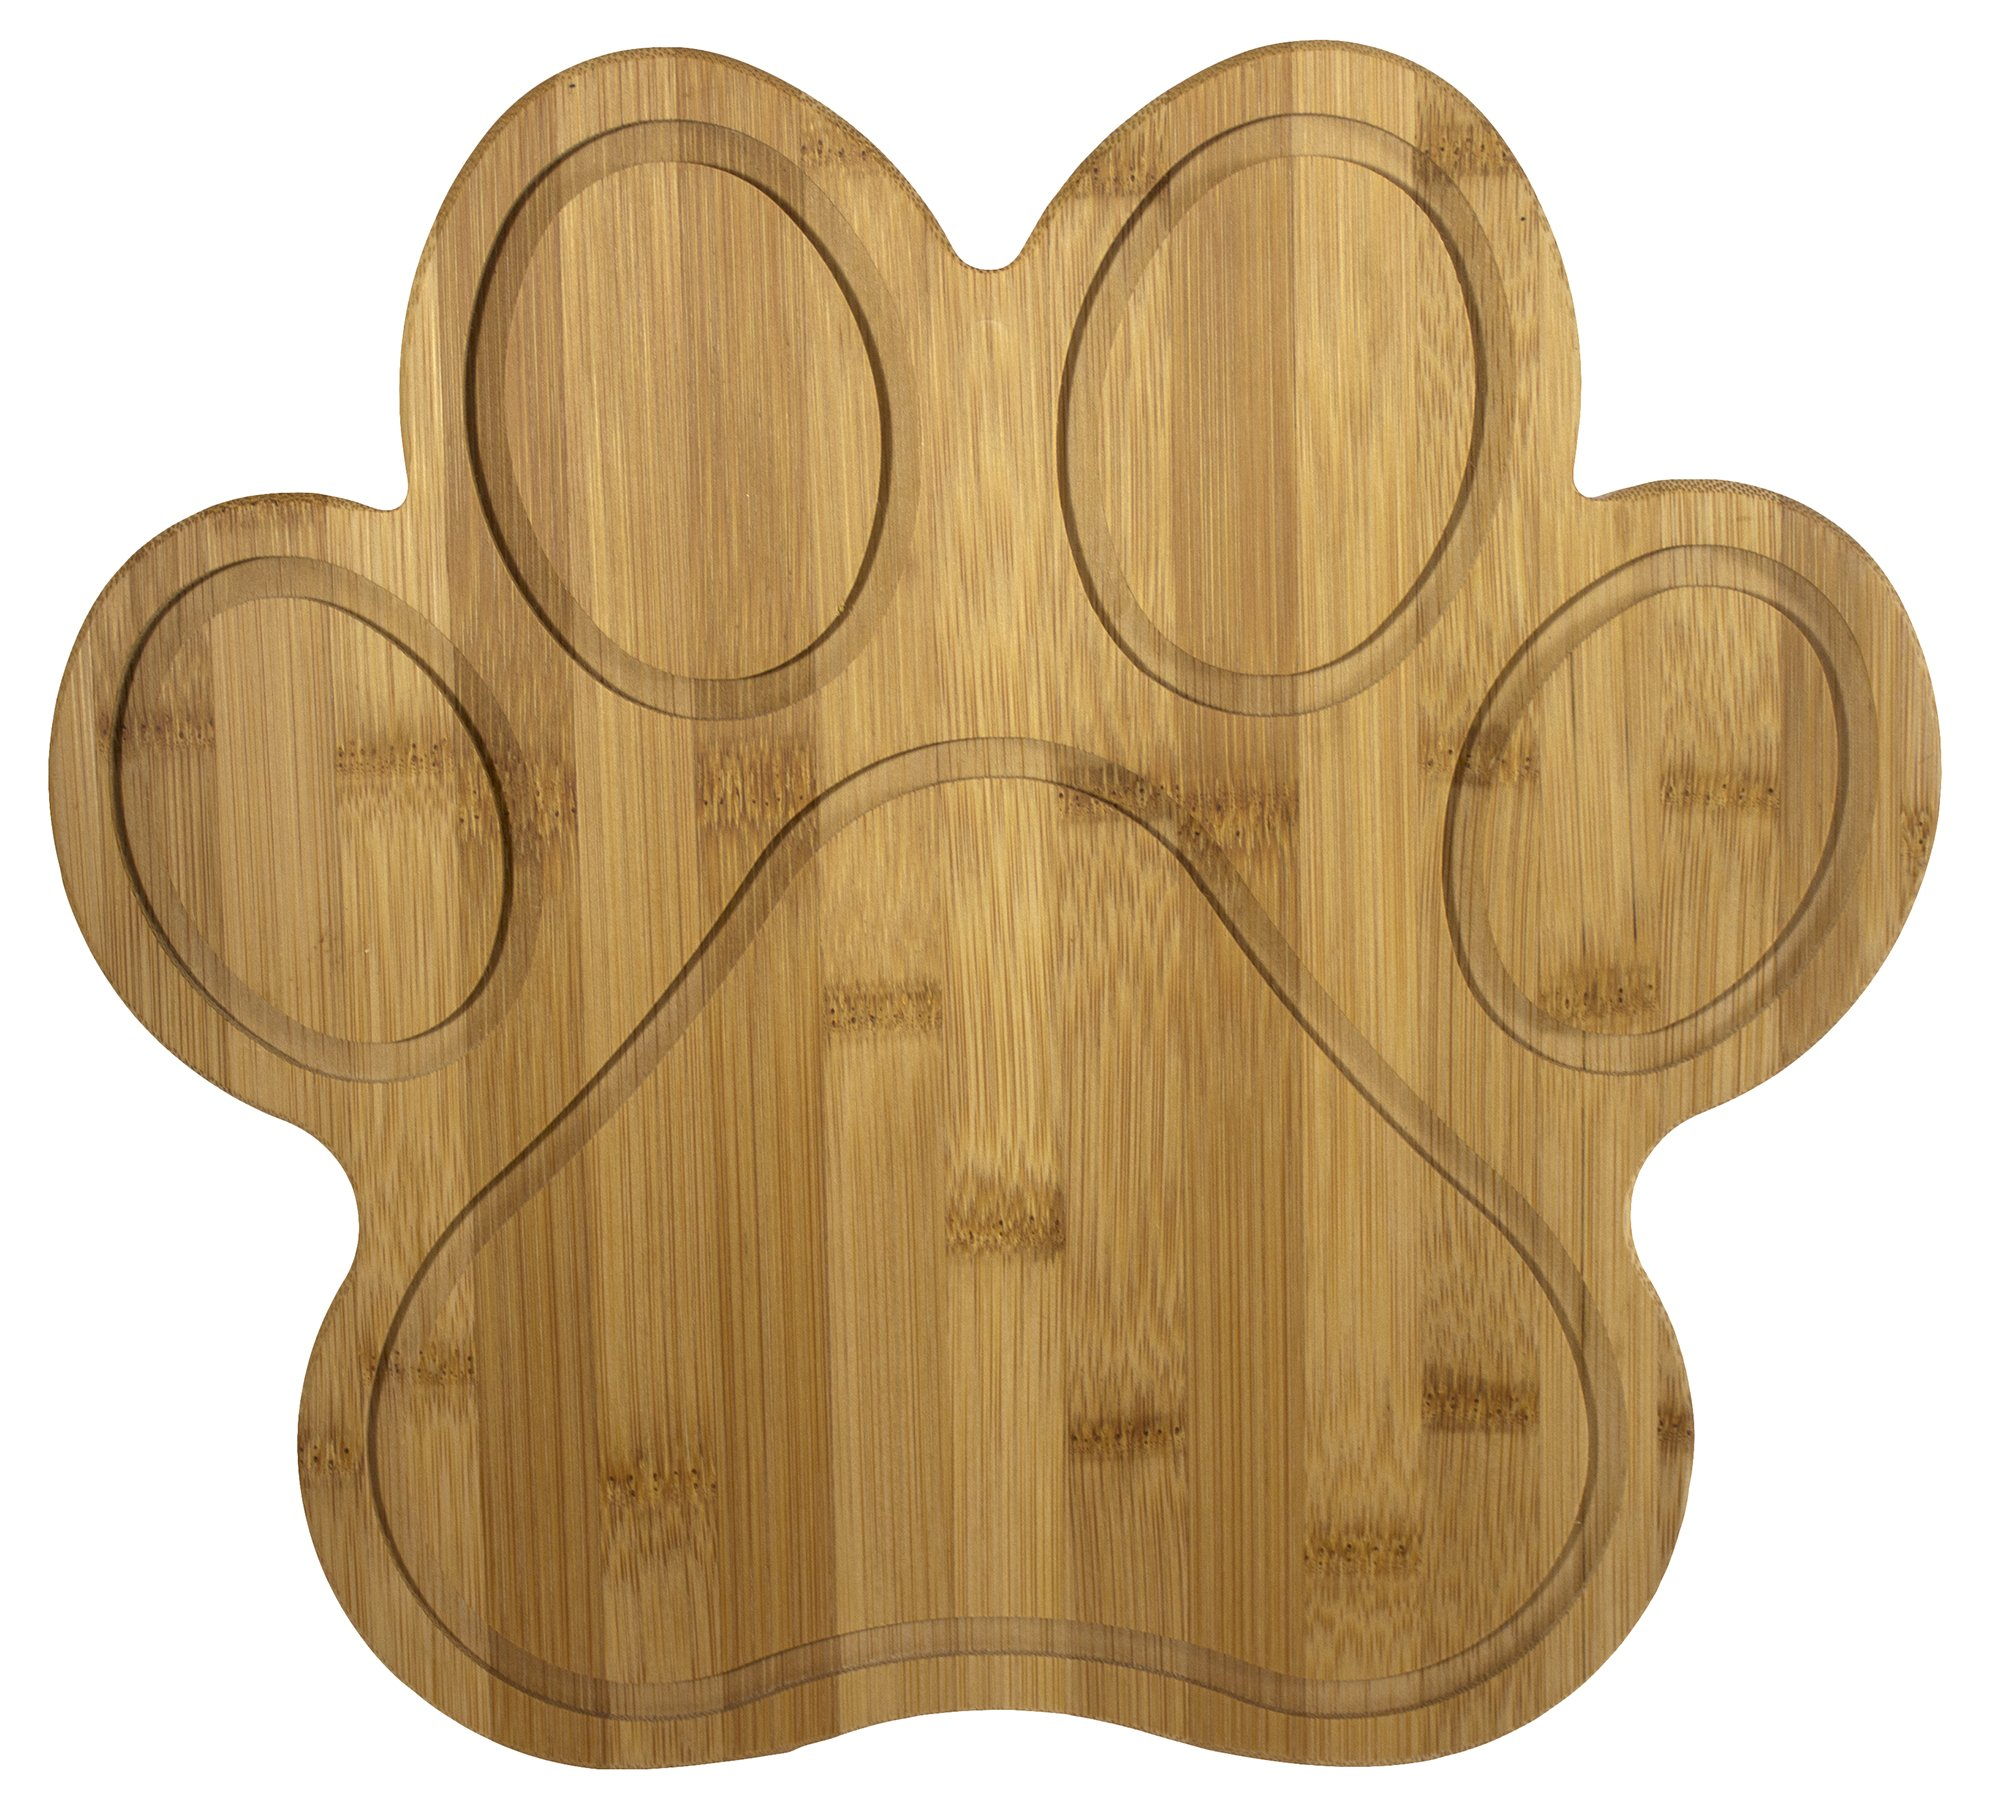 Totally Bamboo Paw Shaped Serving and Cutting Board, 11'' x 10'' by Totally Bamboo